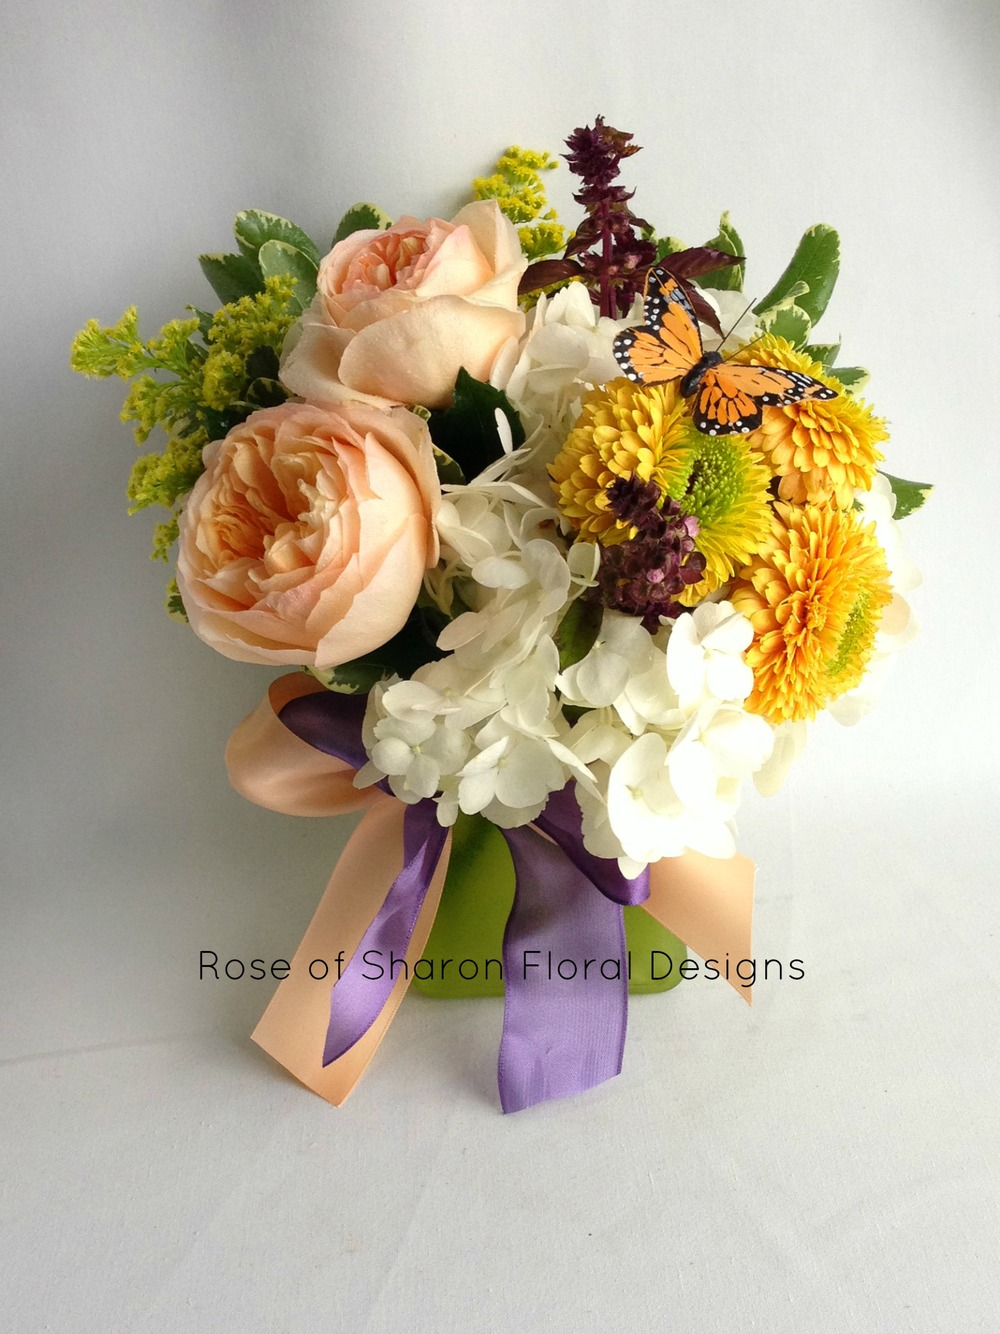 Butterfly Garden Arrangement with Garden Roses, Rose of Sharon Floral Designs